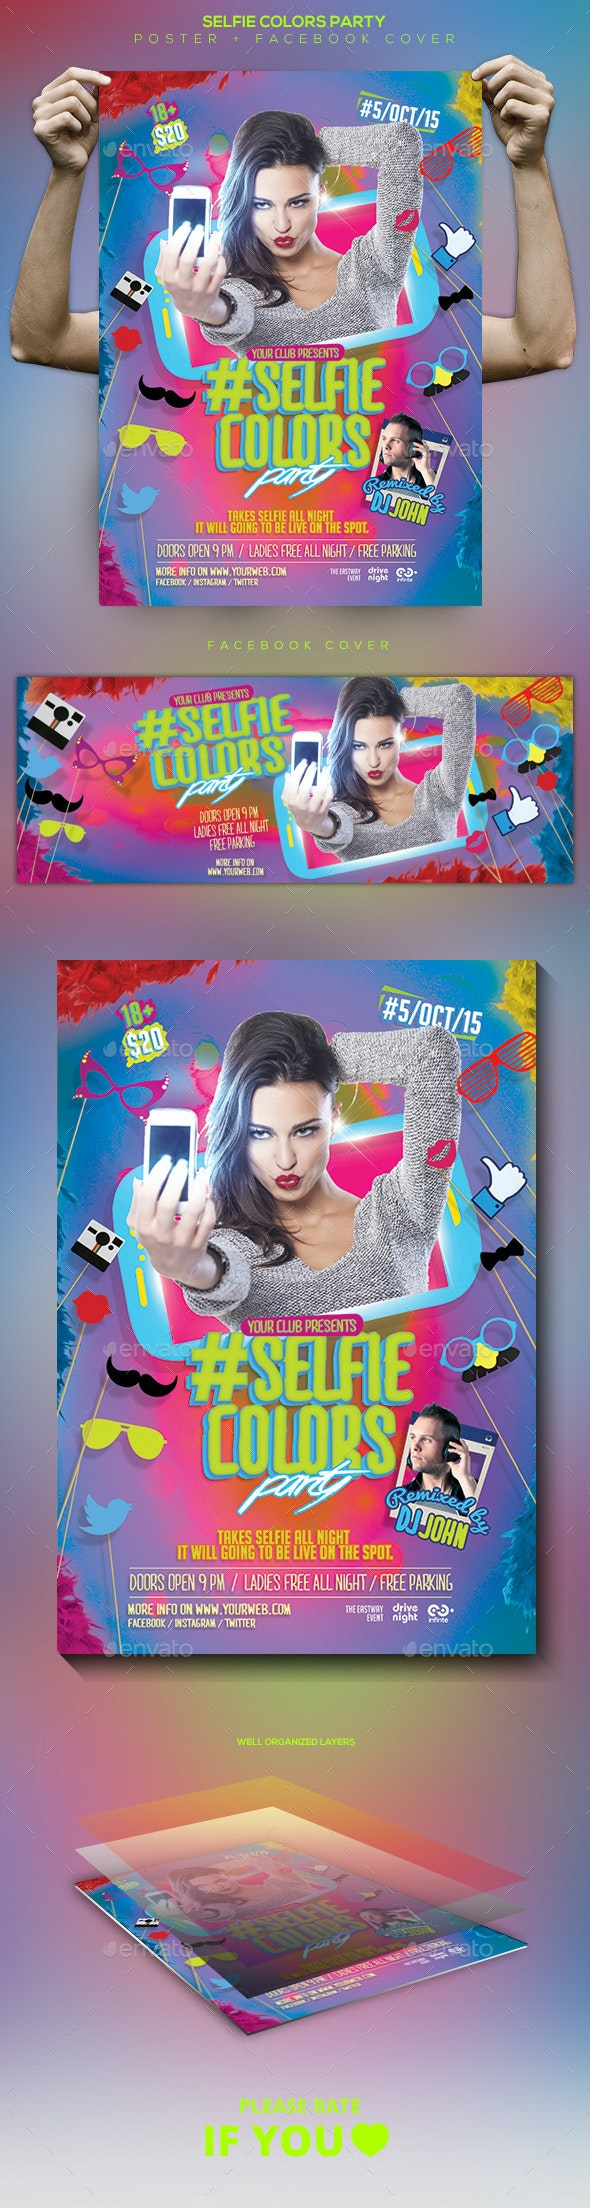 Selfie Colors Night Flyer / Poster / Facebook Cover - Clubs & Parties Events